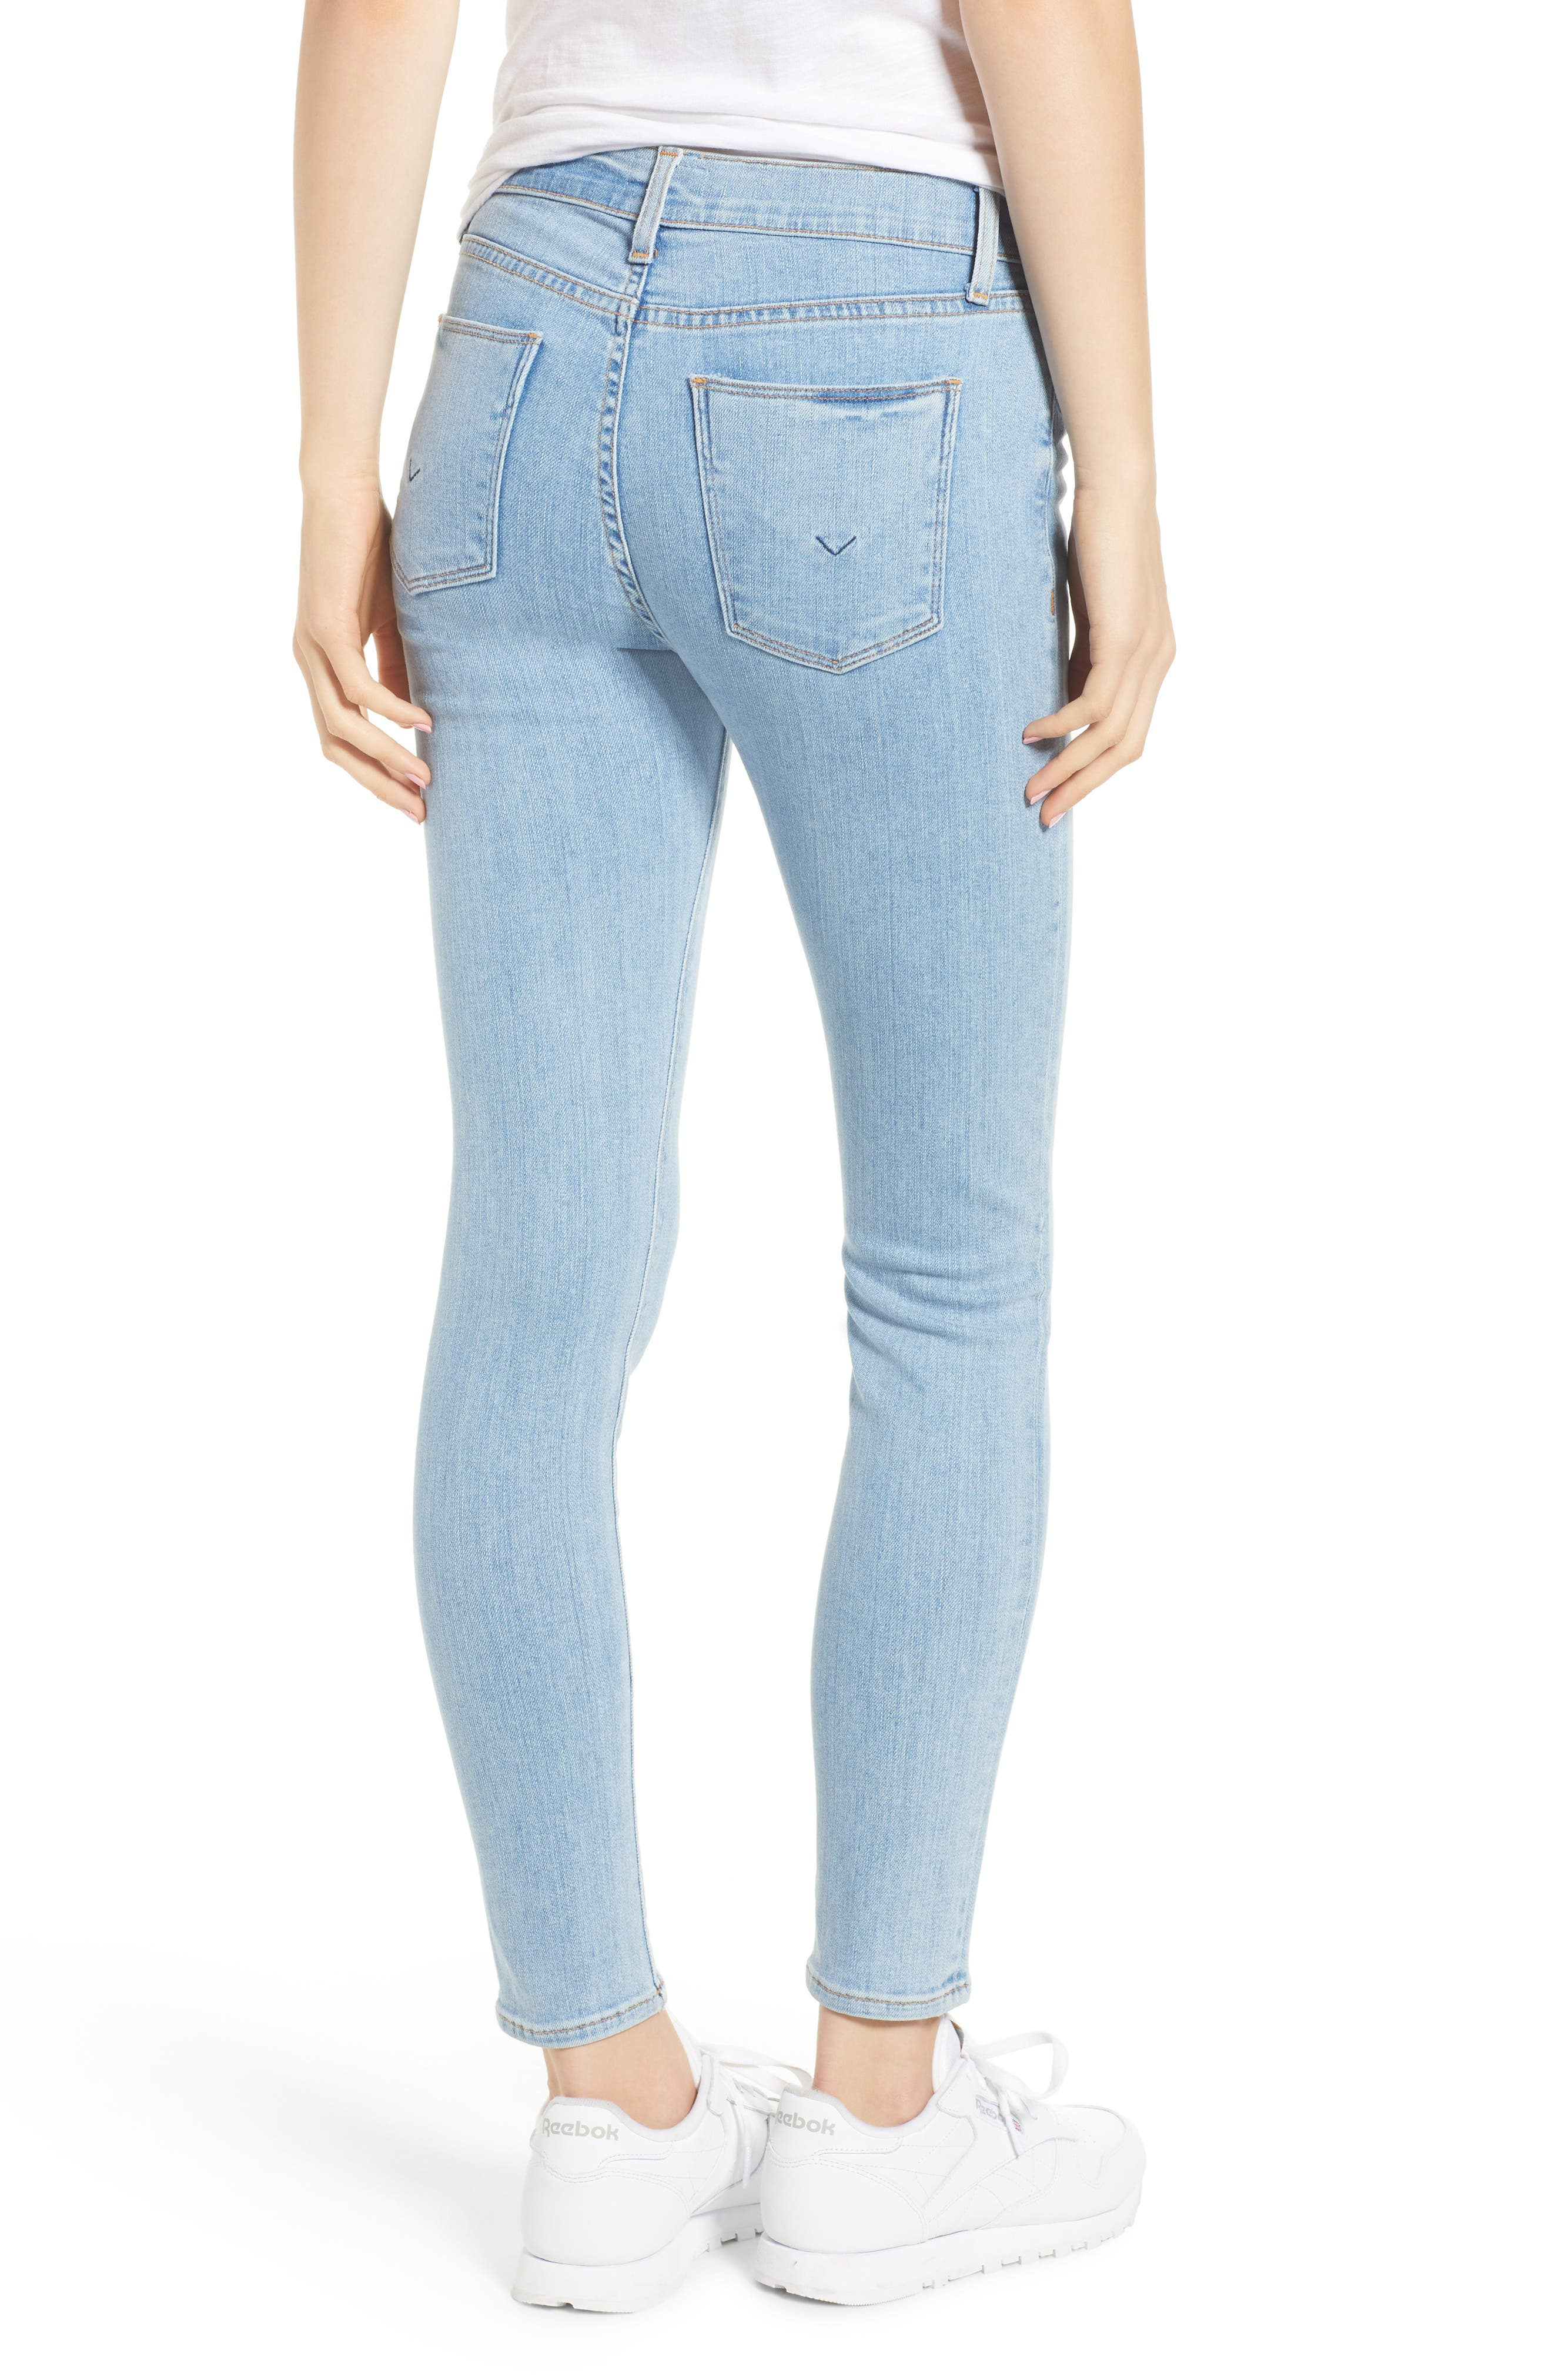 Barbara High Waist Super Skinny Jeans,                             Alternate thumbnail 2, color,                             450